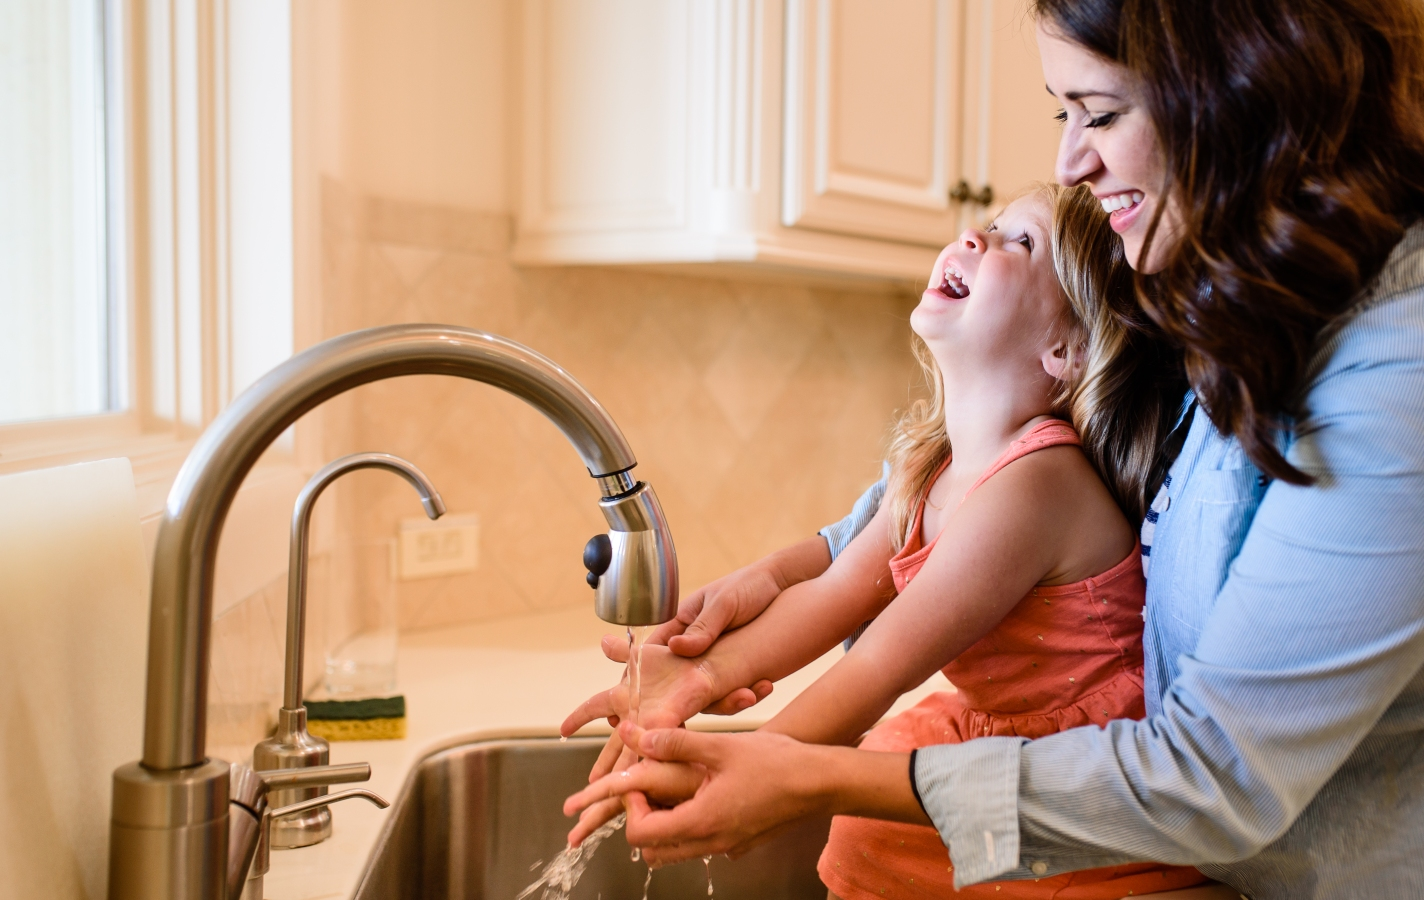 Mother and Daughter Washing Hands and Laughing